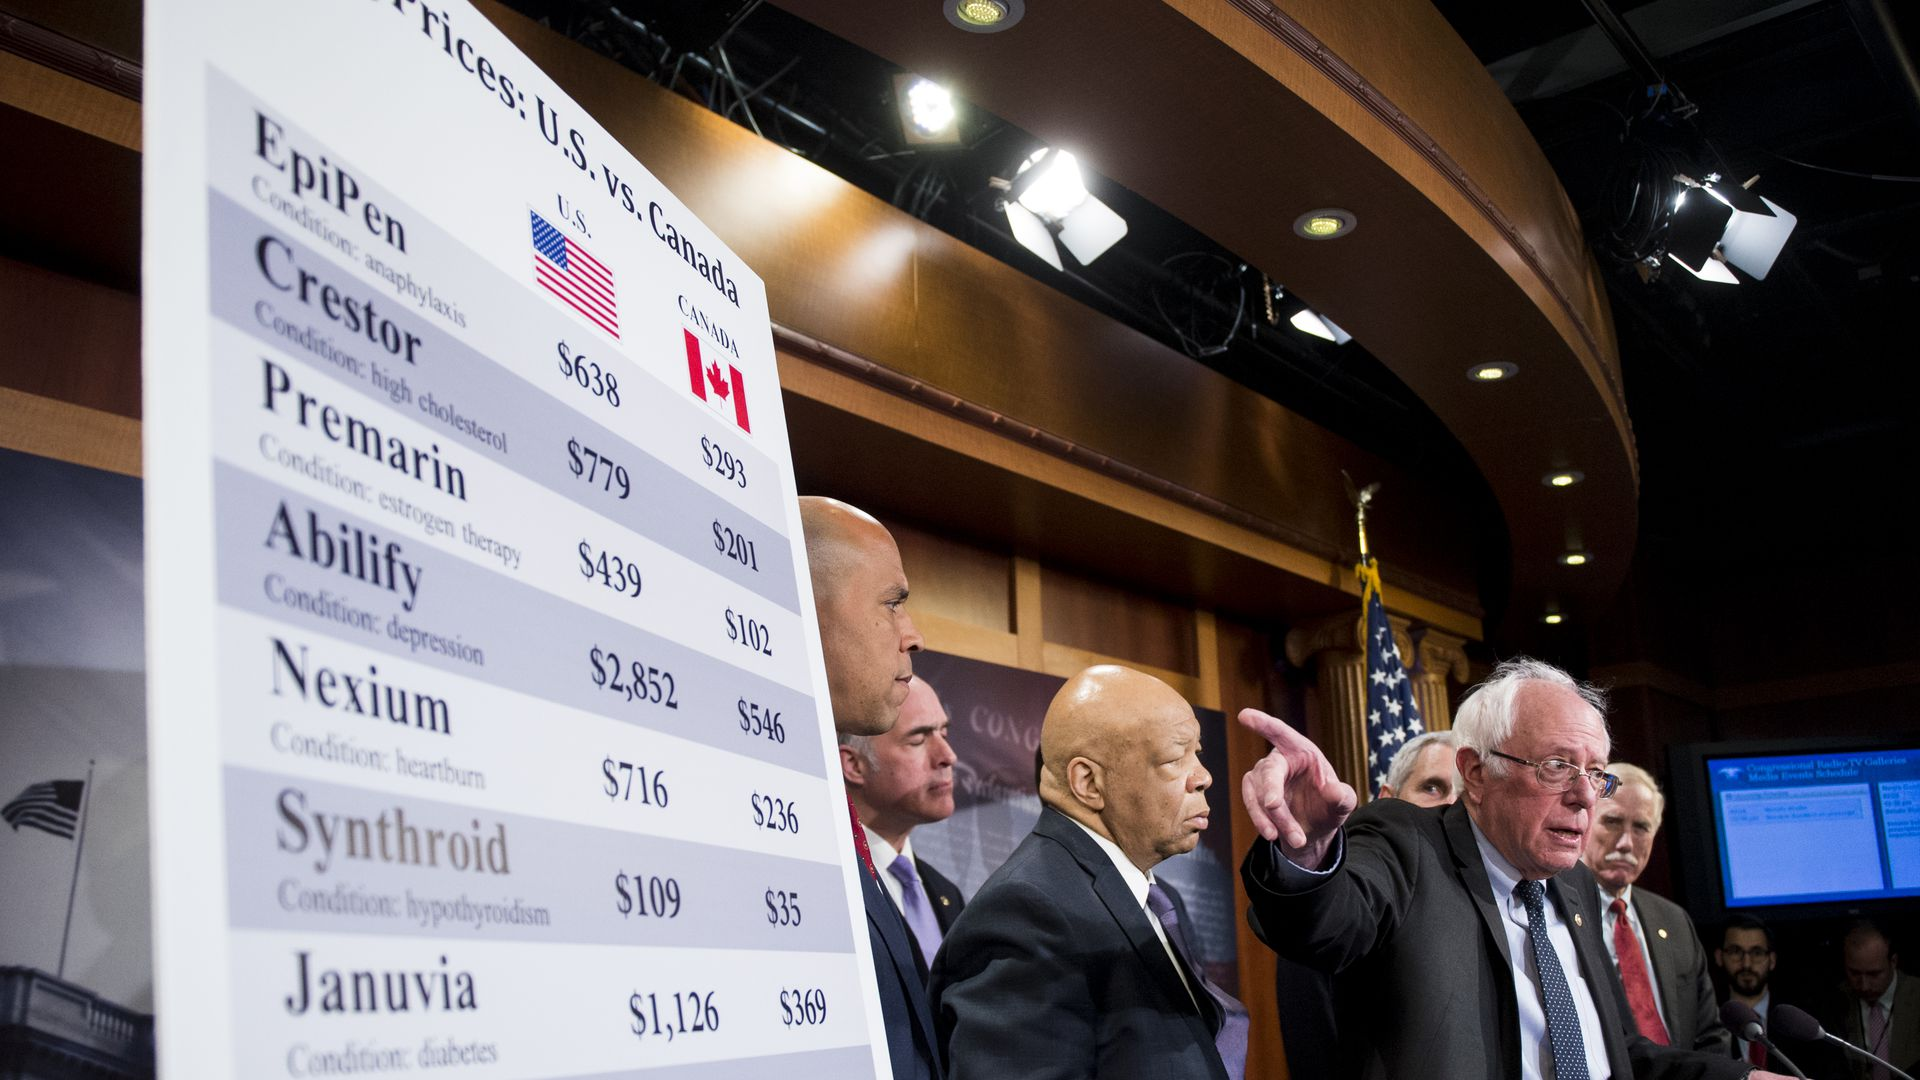 Senators point to a chart showing high drug prices.